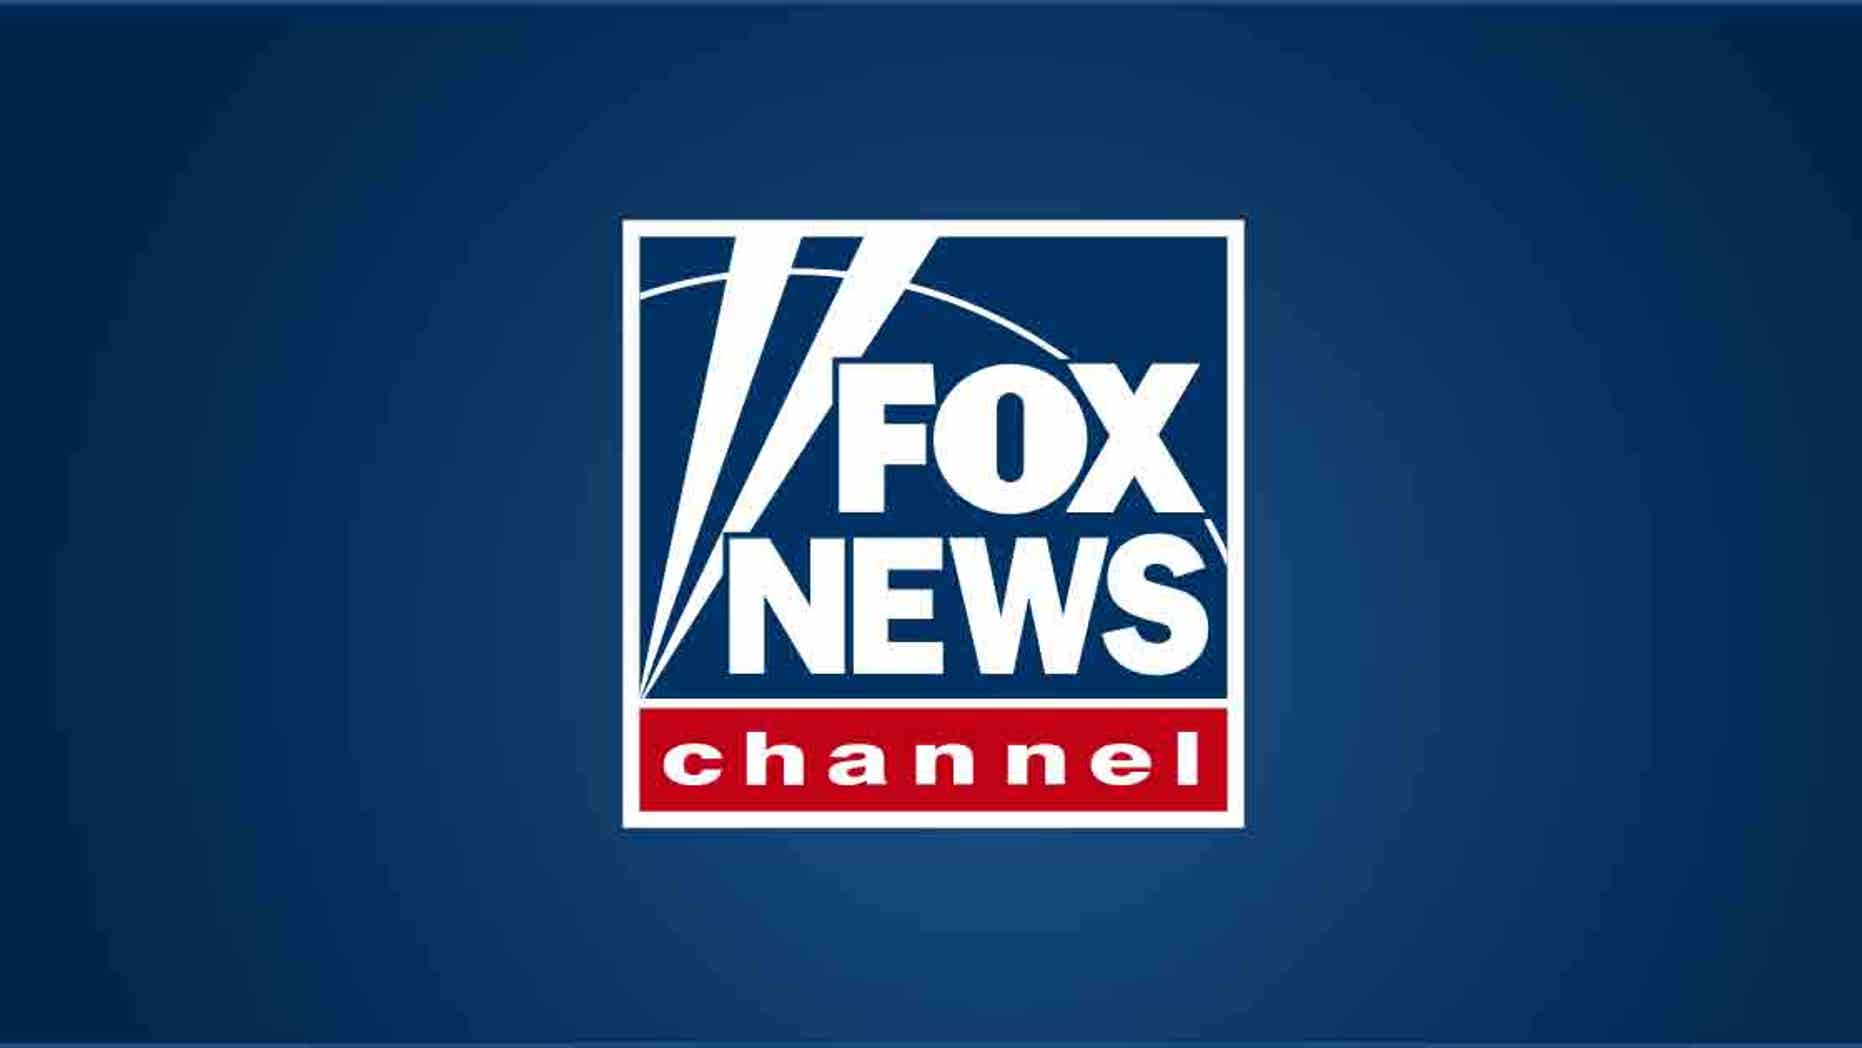 Westlake Legal Group fox-news-channel-logo Today on Fox News: May 25, 2020 fox-news/media fox-news/entertainment/media fox news fnc/media fnc article 0e2c9edd-2af5-5cb9-b0d3-ba5cde149366